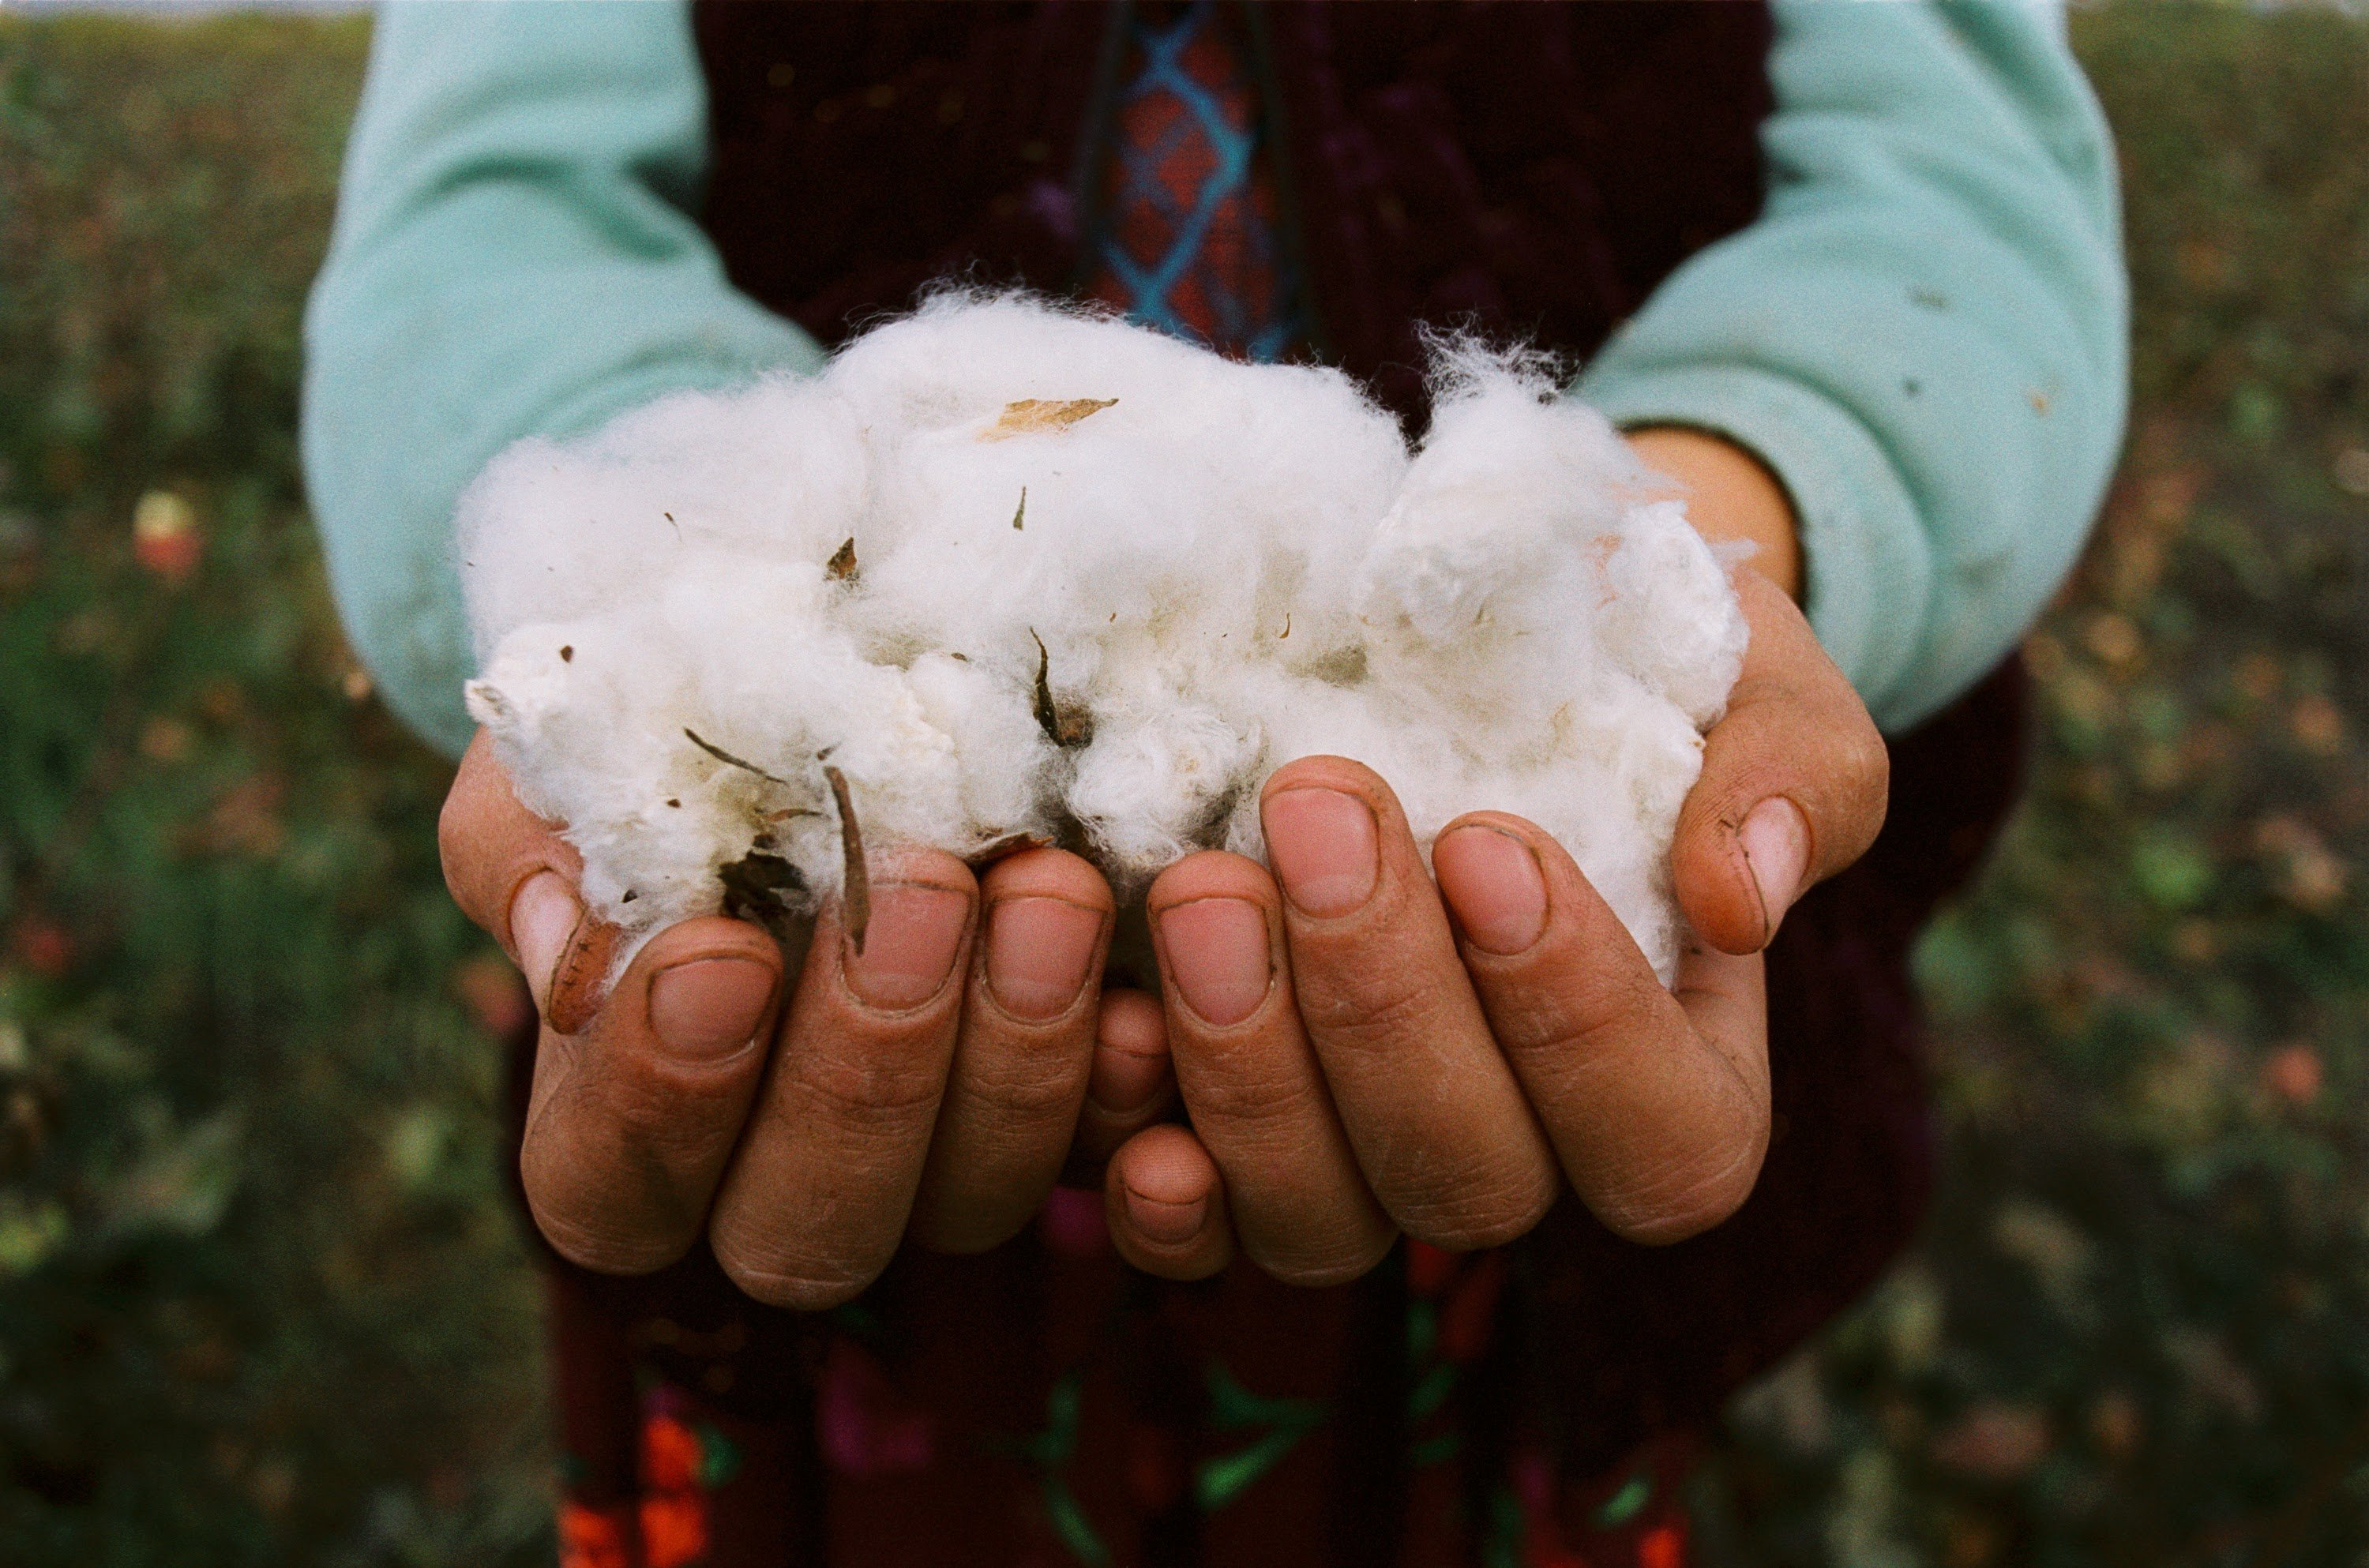 Cotton in Uzbekistan: how 'white gold' destroys the environment and human rights